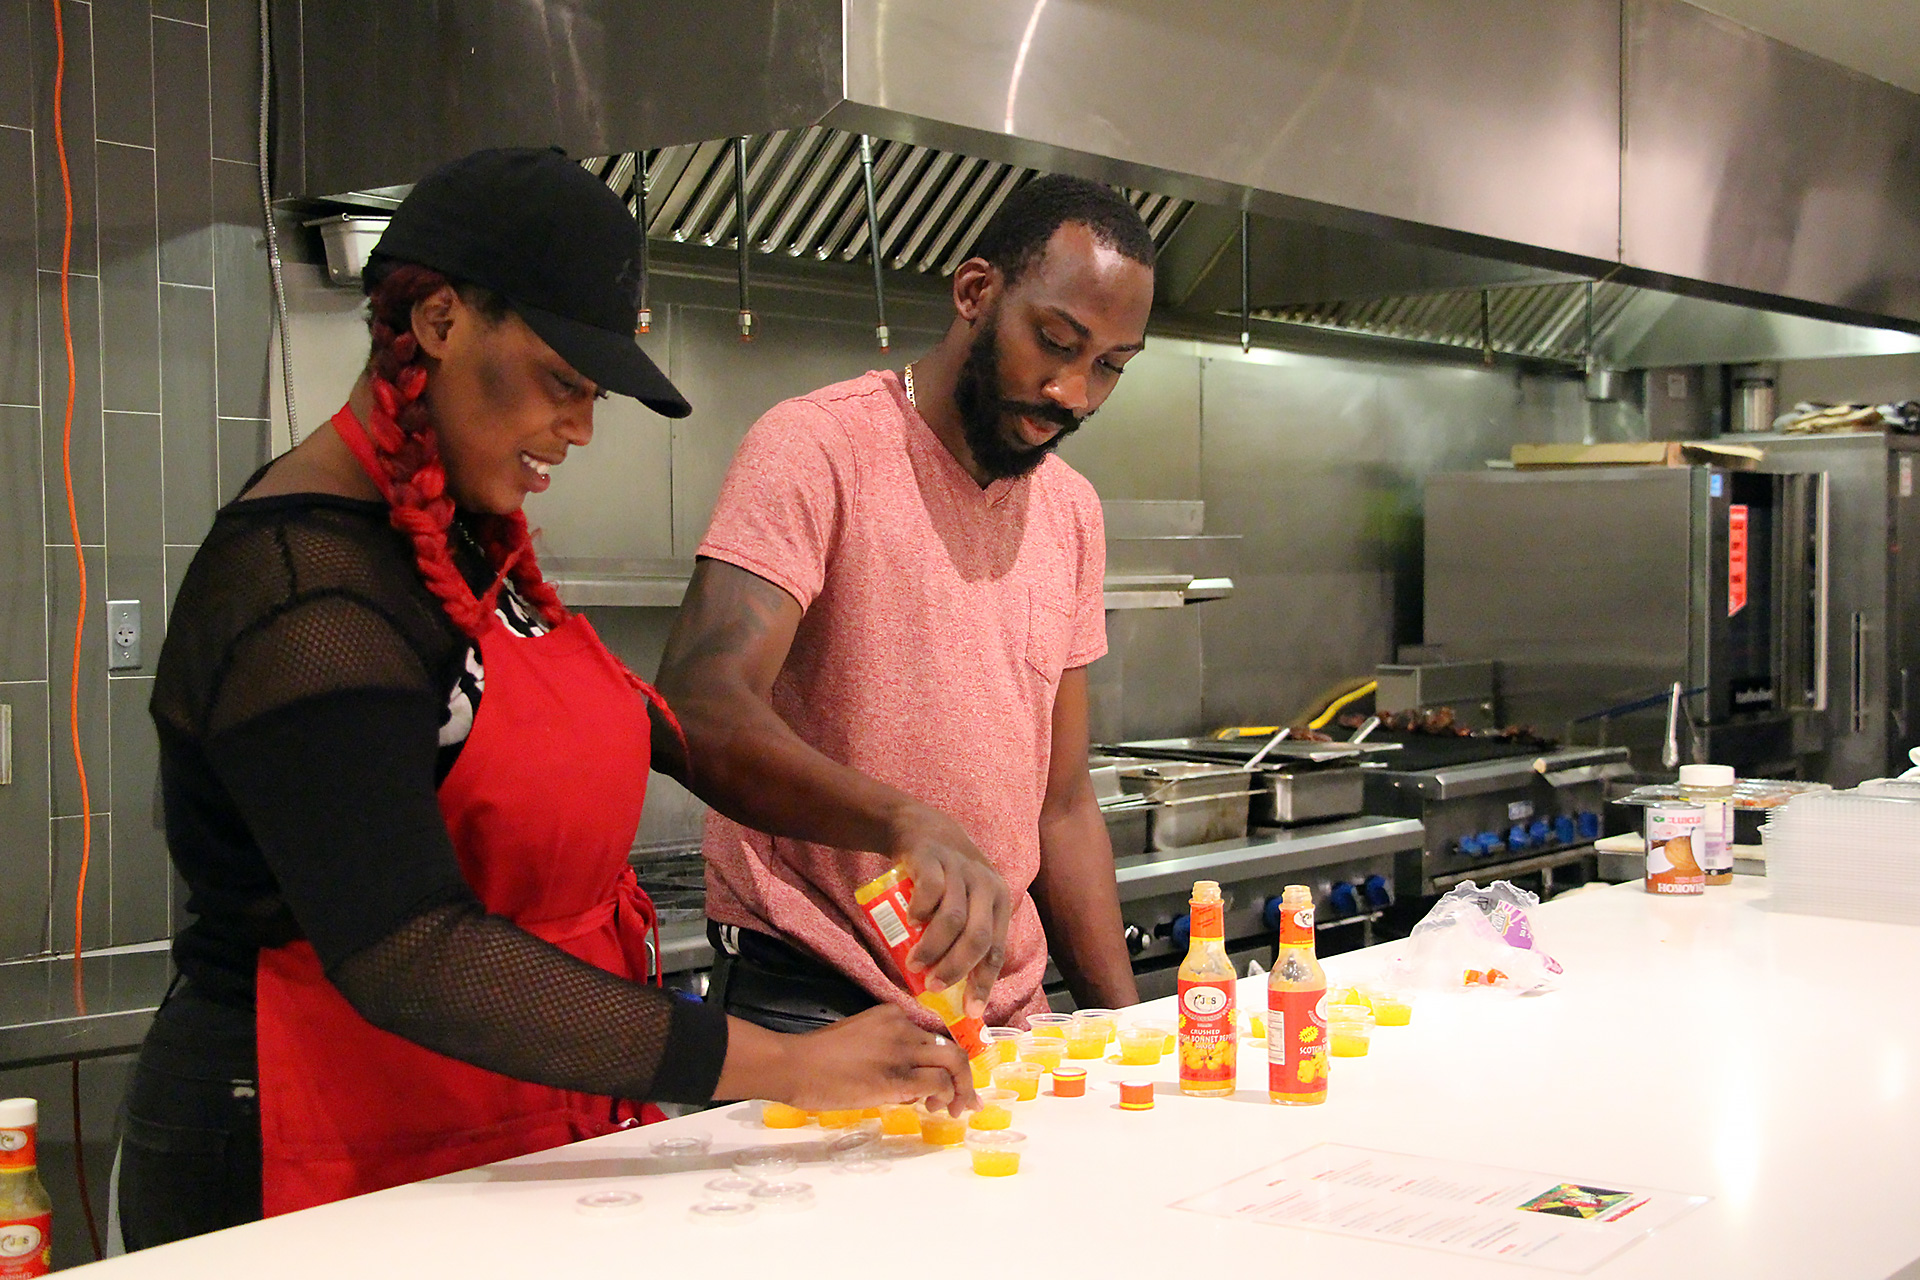 Co-owner and Chef OB Matterson (R) and staff filling containers with Scotch Bonnet Pepper Sauce.